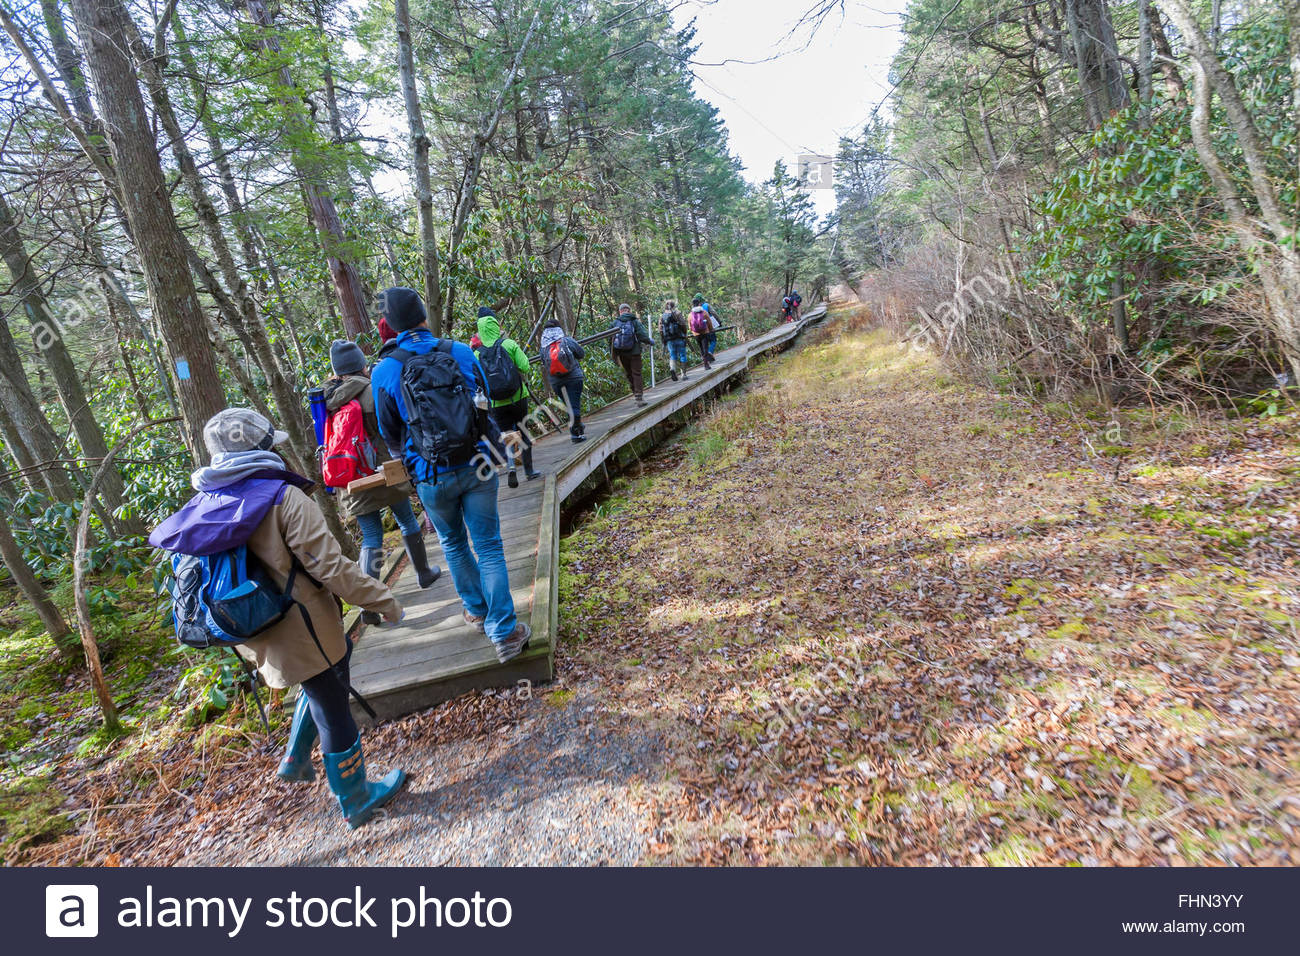 A group of people, young men and women on a hike in the woods. - Stock Image